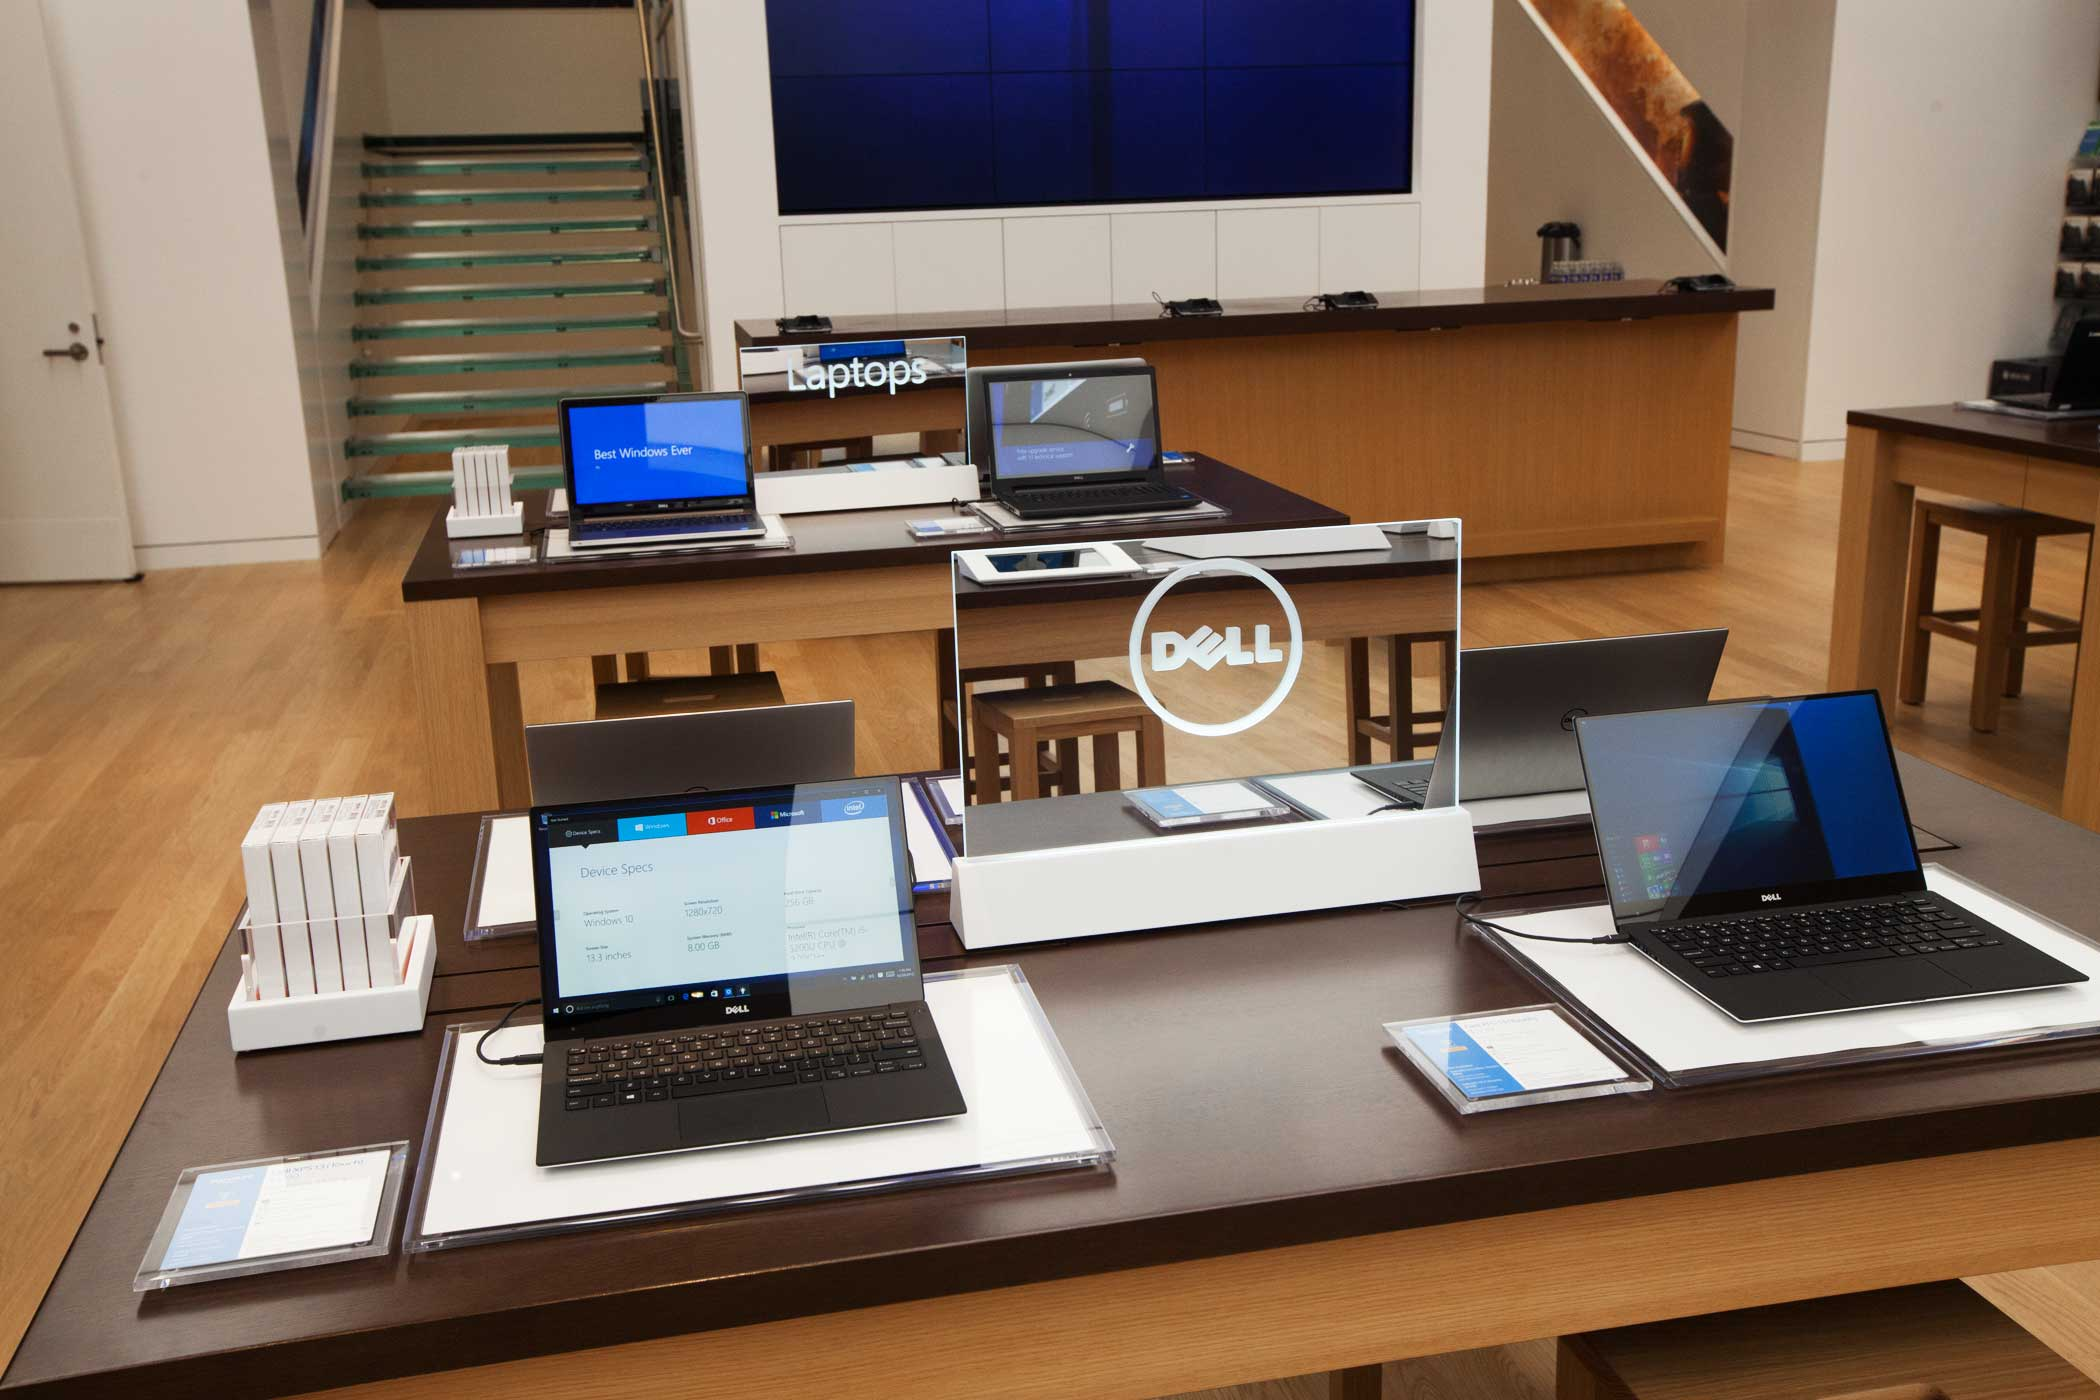 <b>Microsoft Store</b> Dell computers are on sale with other laptops behind them.